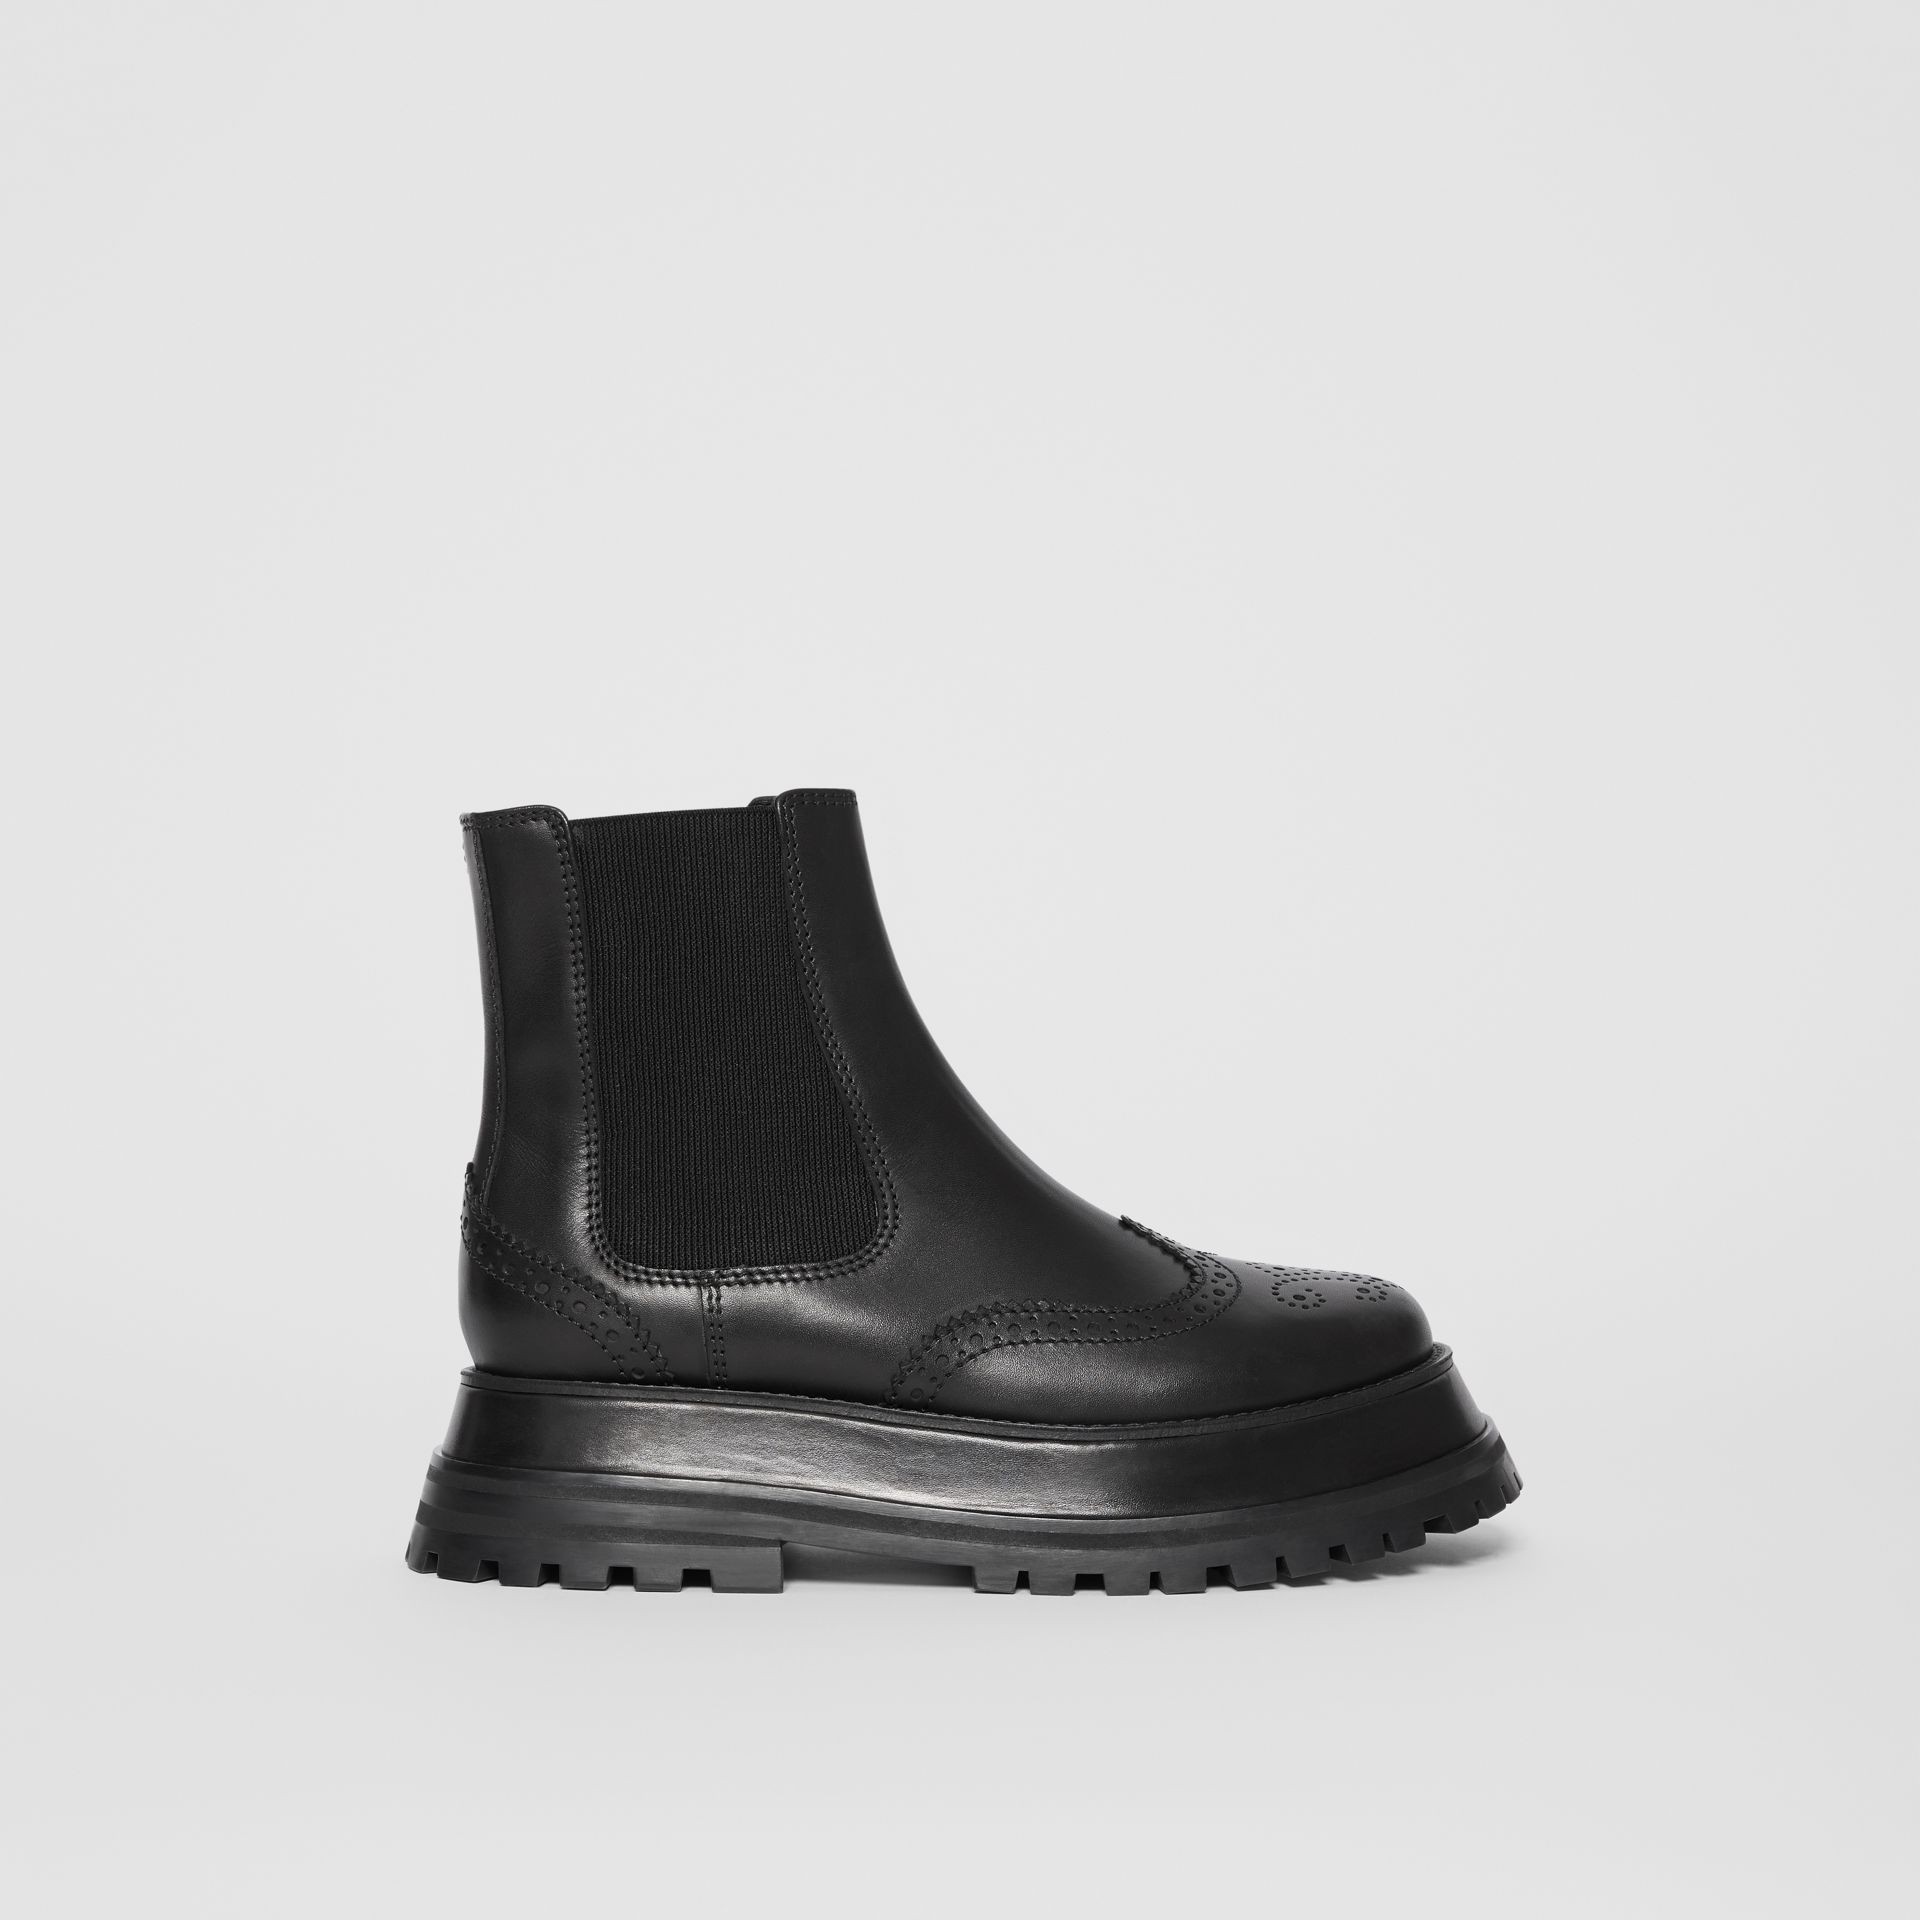 Brogue Detail Leather Chelsea Boots in Black - Women | Burberry - gallery image 5